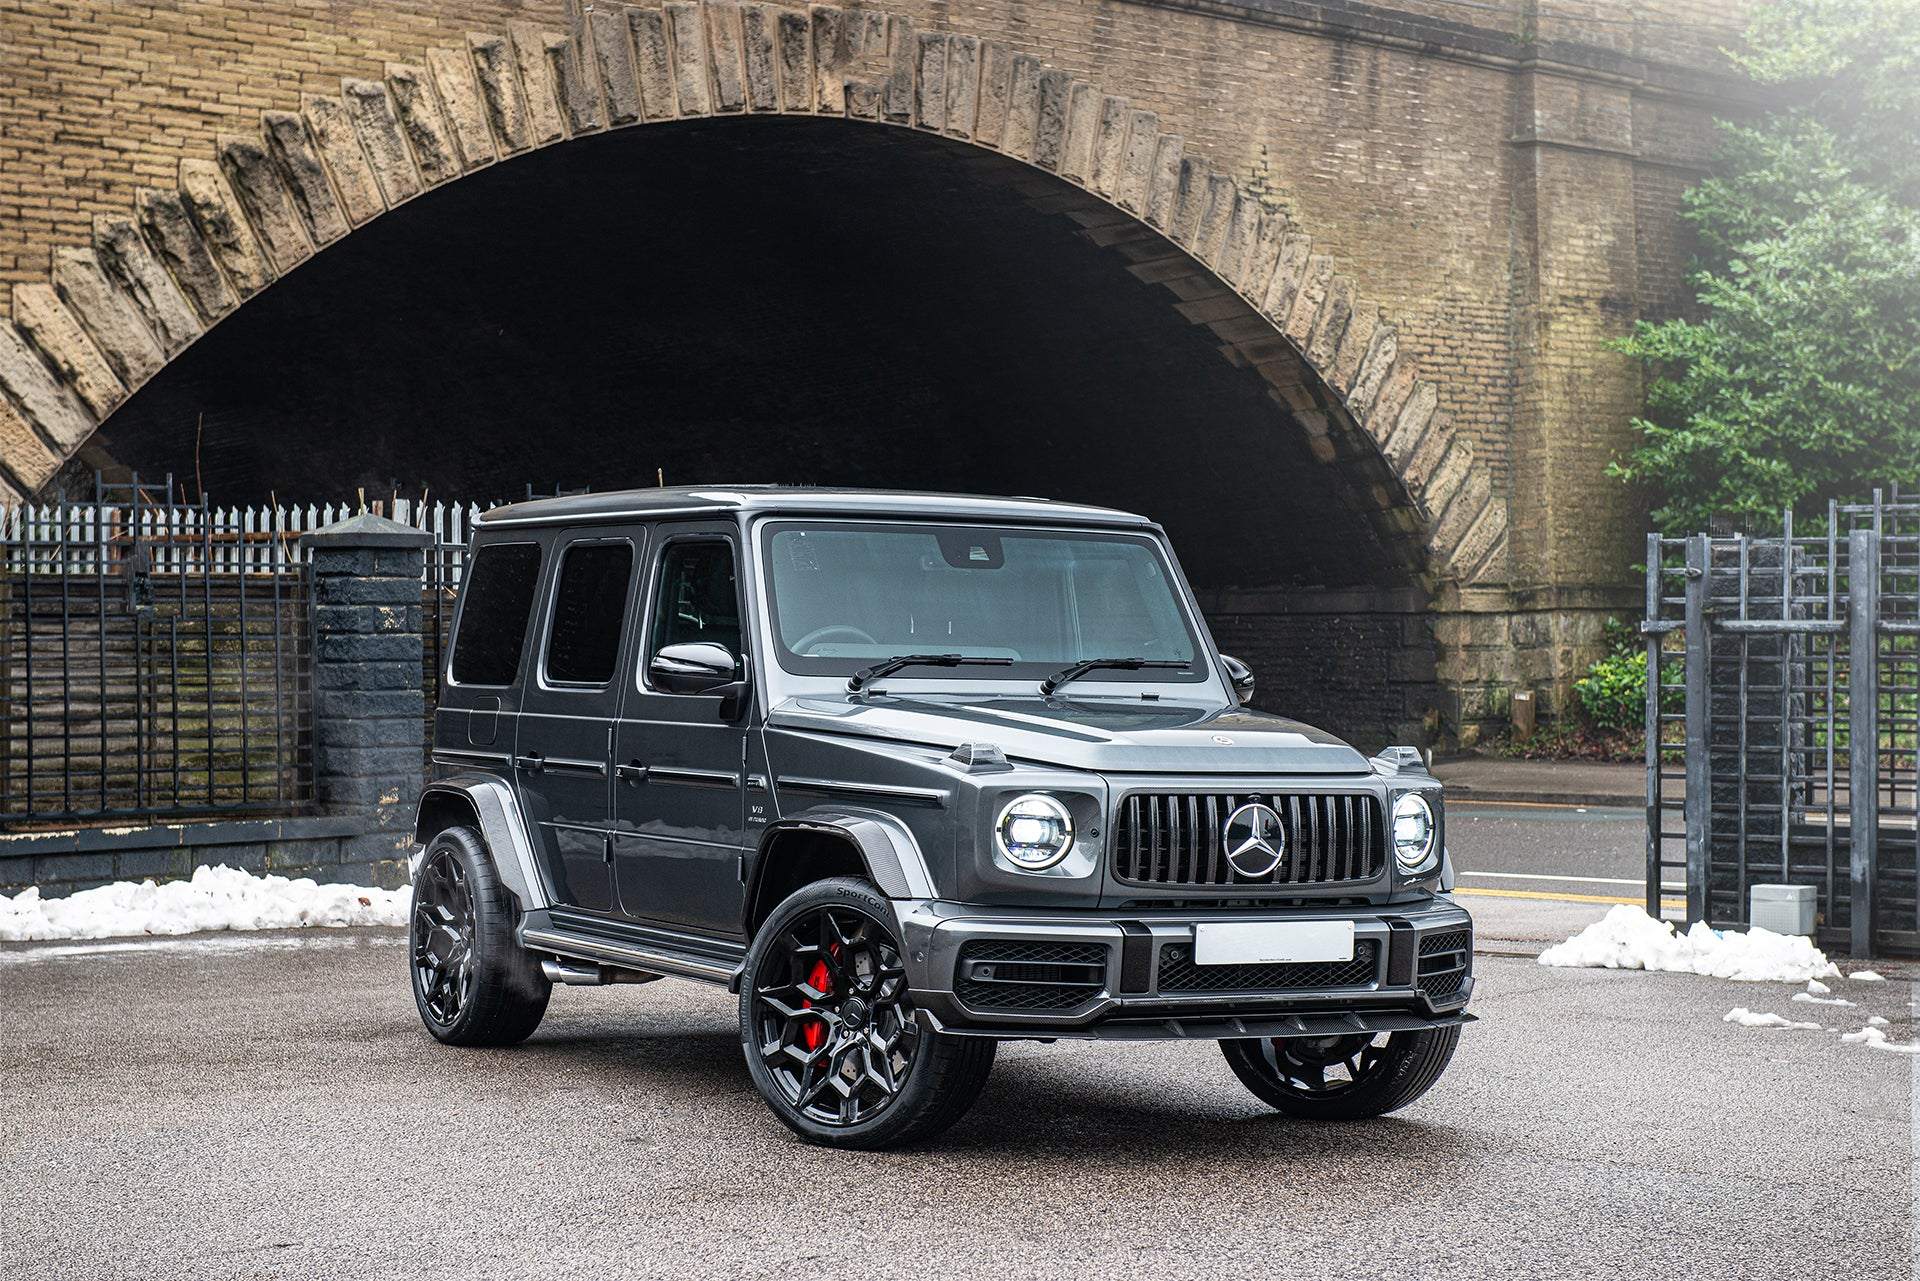 MERCEDES G-WAGON (2018-PRESENT) G63 AMG HAMMER EDITION II - EXPOSED CARBON BODY KIT